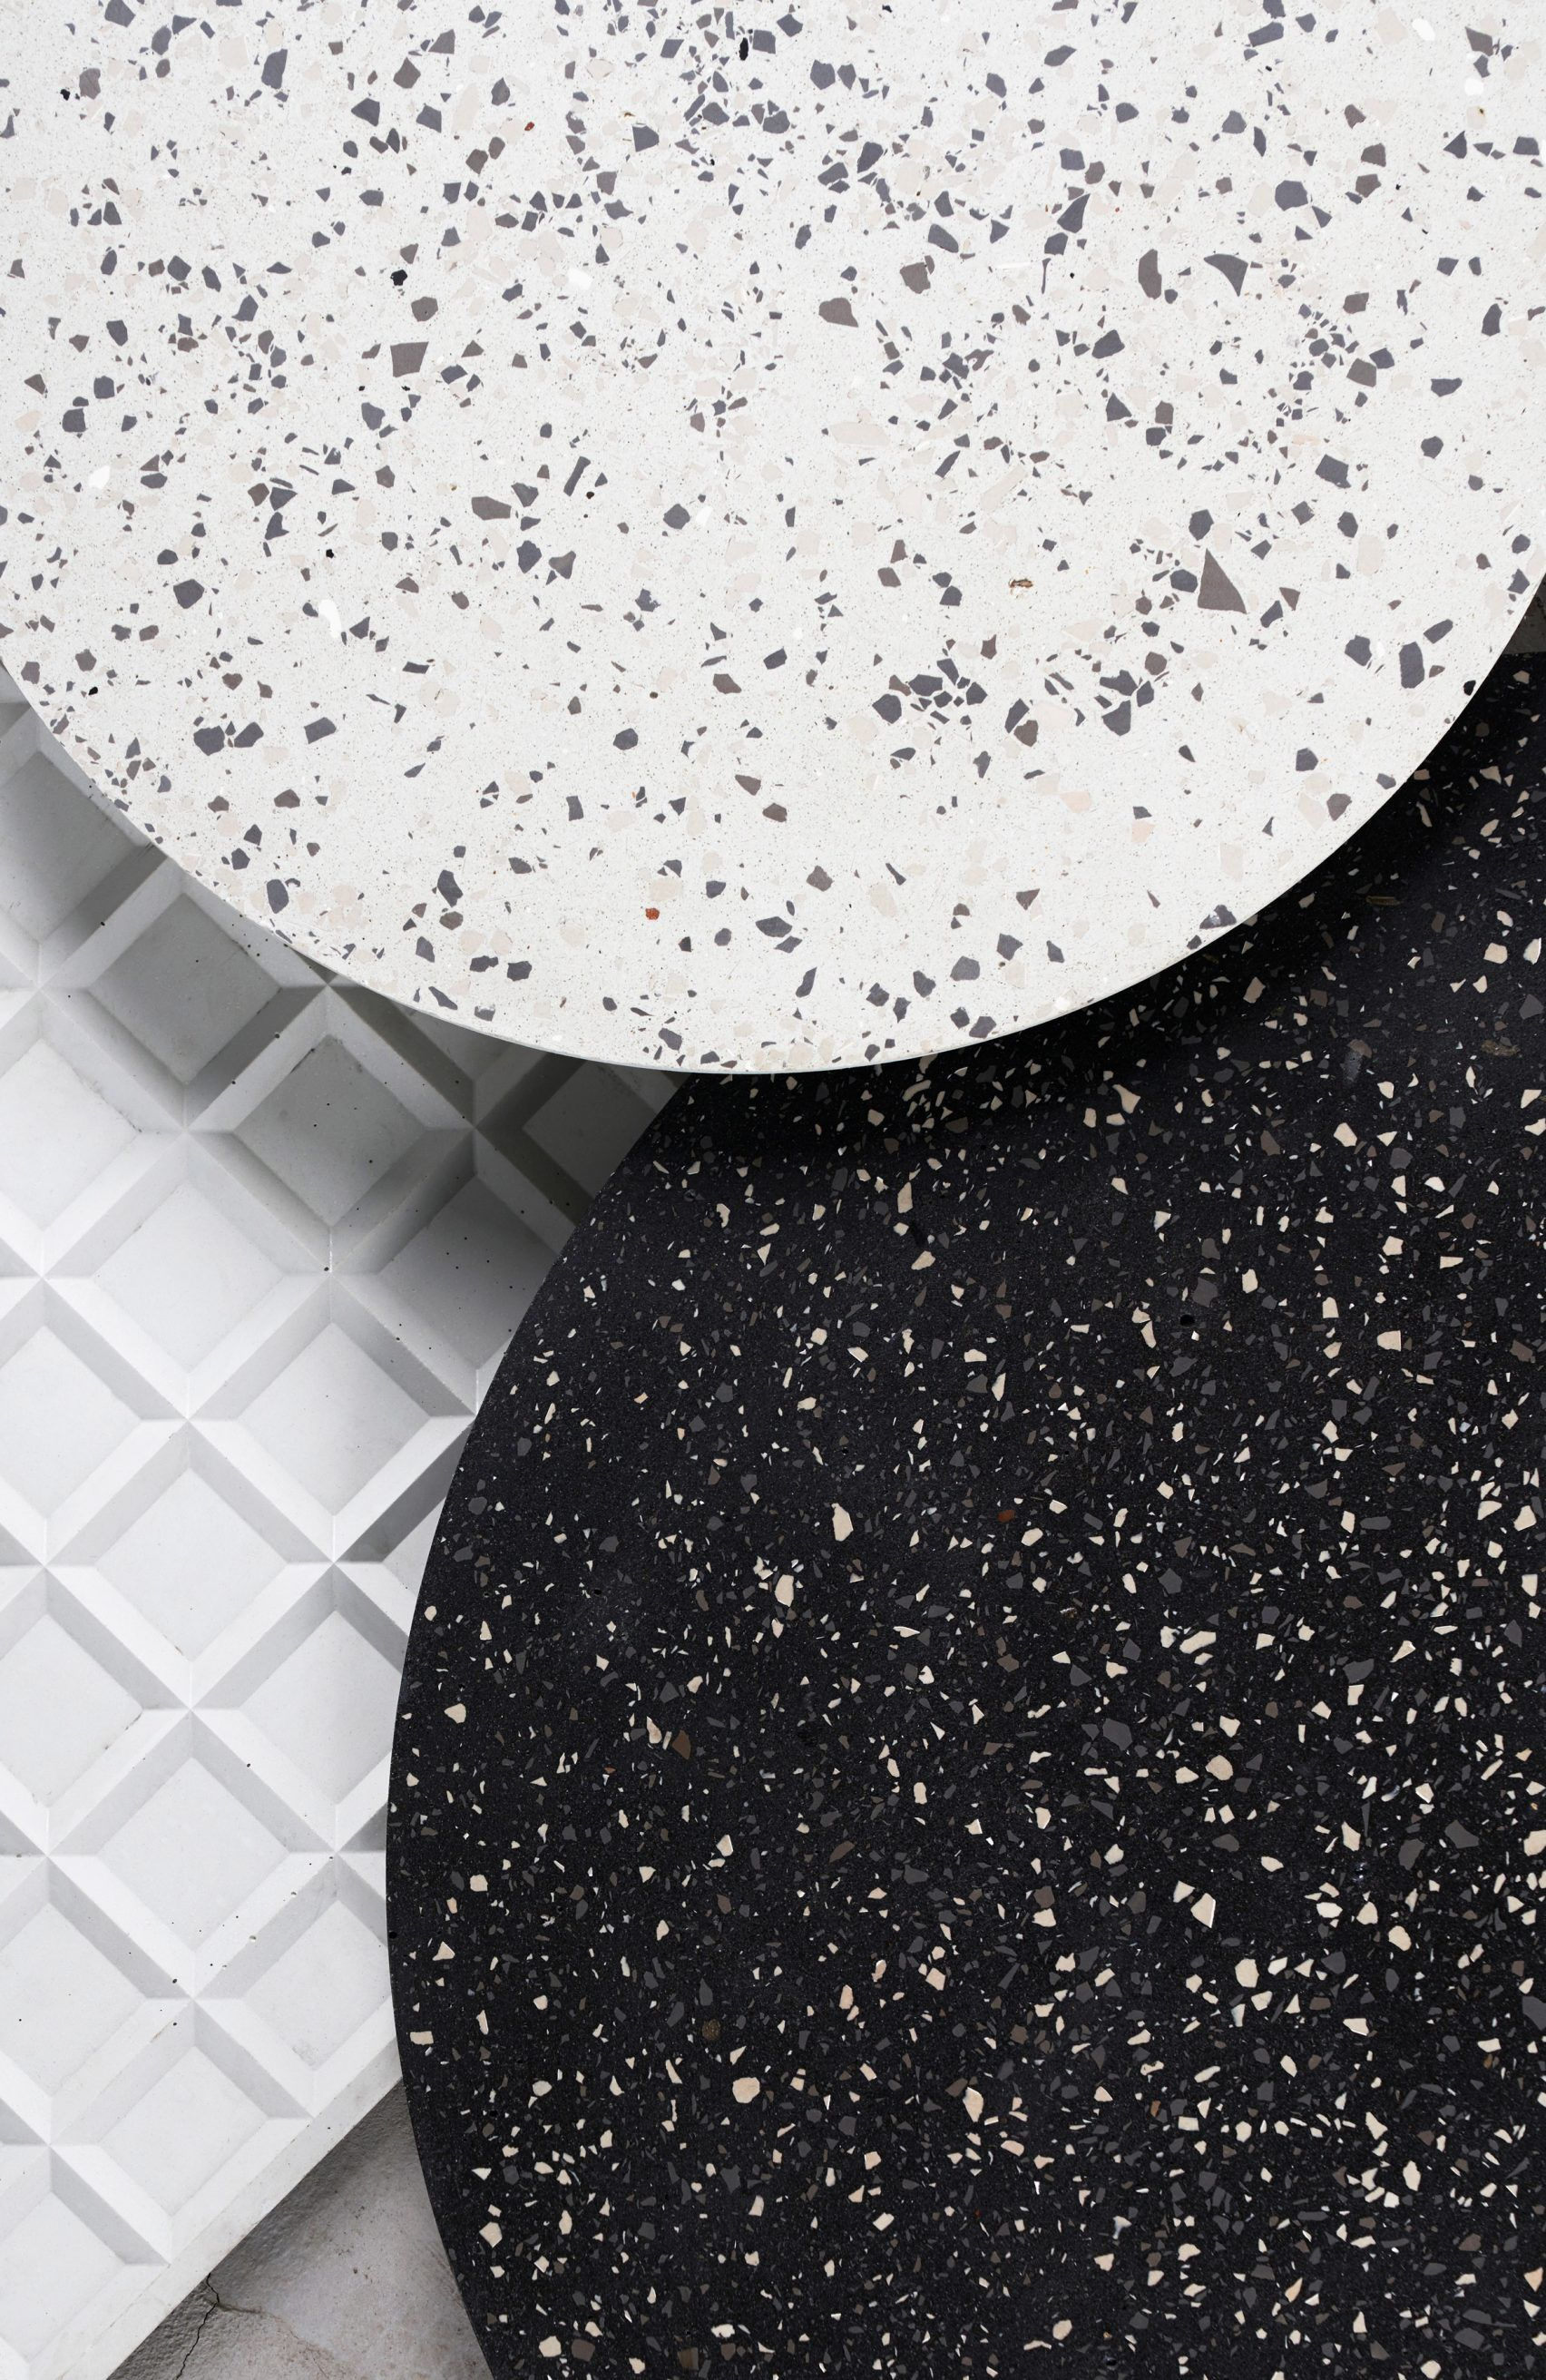 Bentu design makes terrazzo furniture using recycled ceramic waste chinese studio bentu design collected leftover tiles and crushed them to create its ceramics made collection of speckled furniture and lighting dailygadgetfo Images